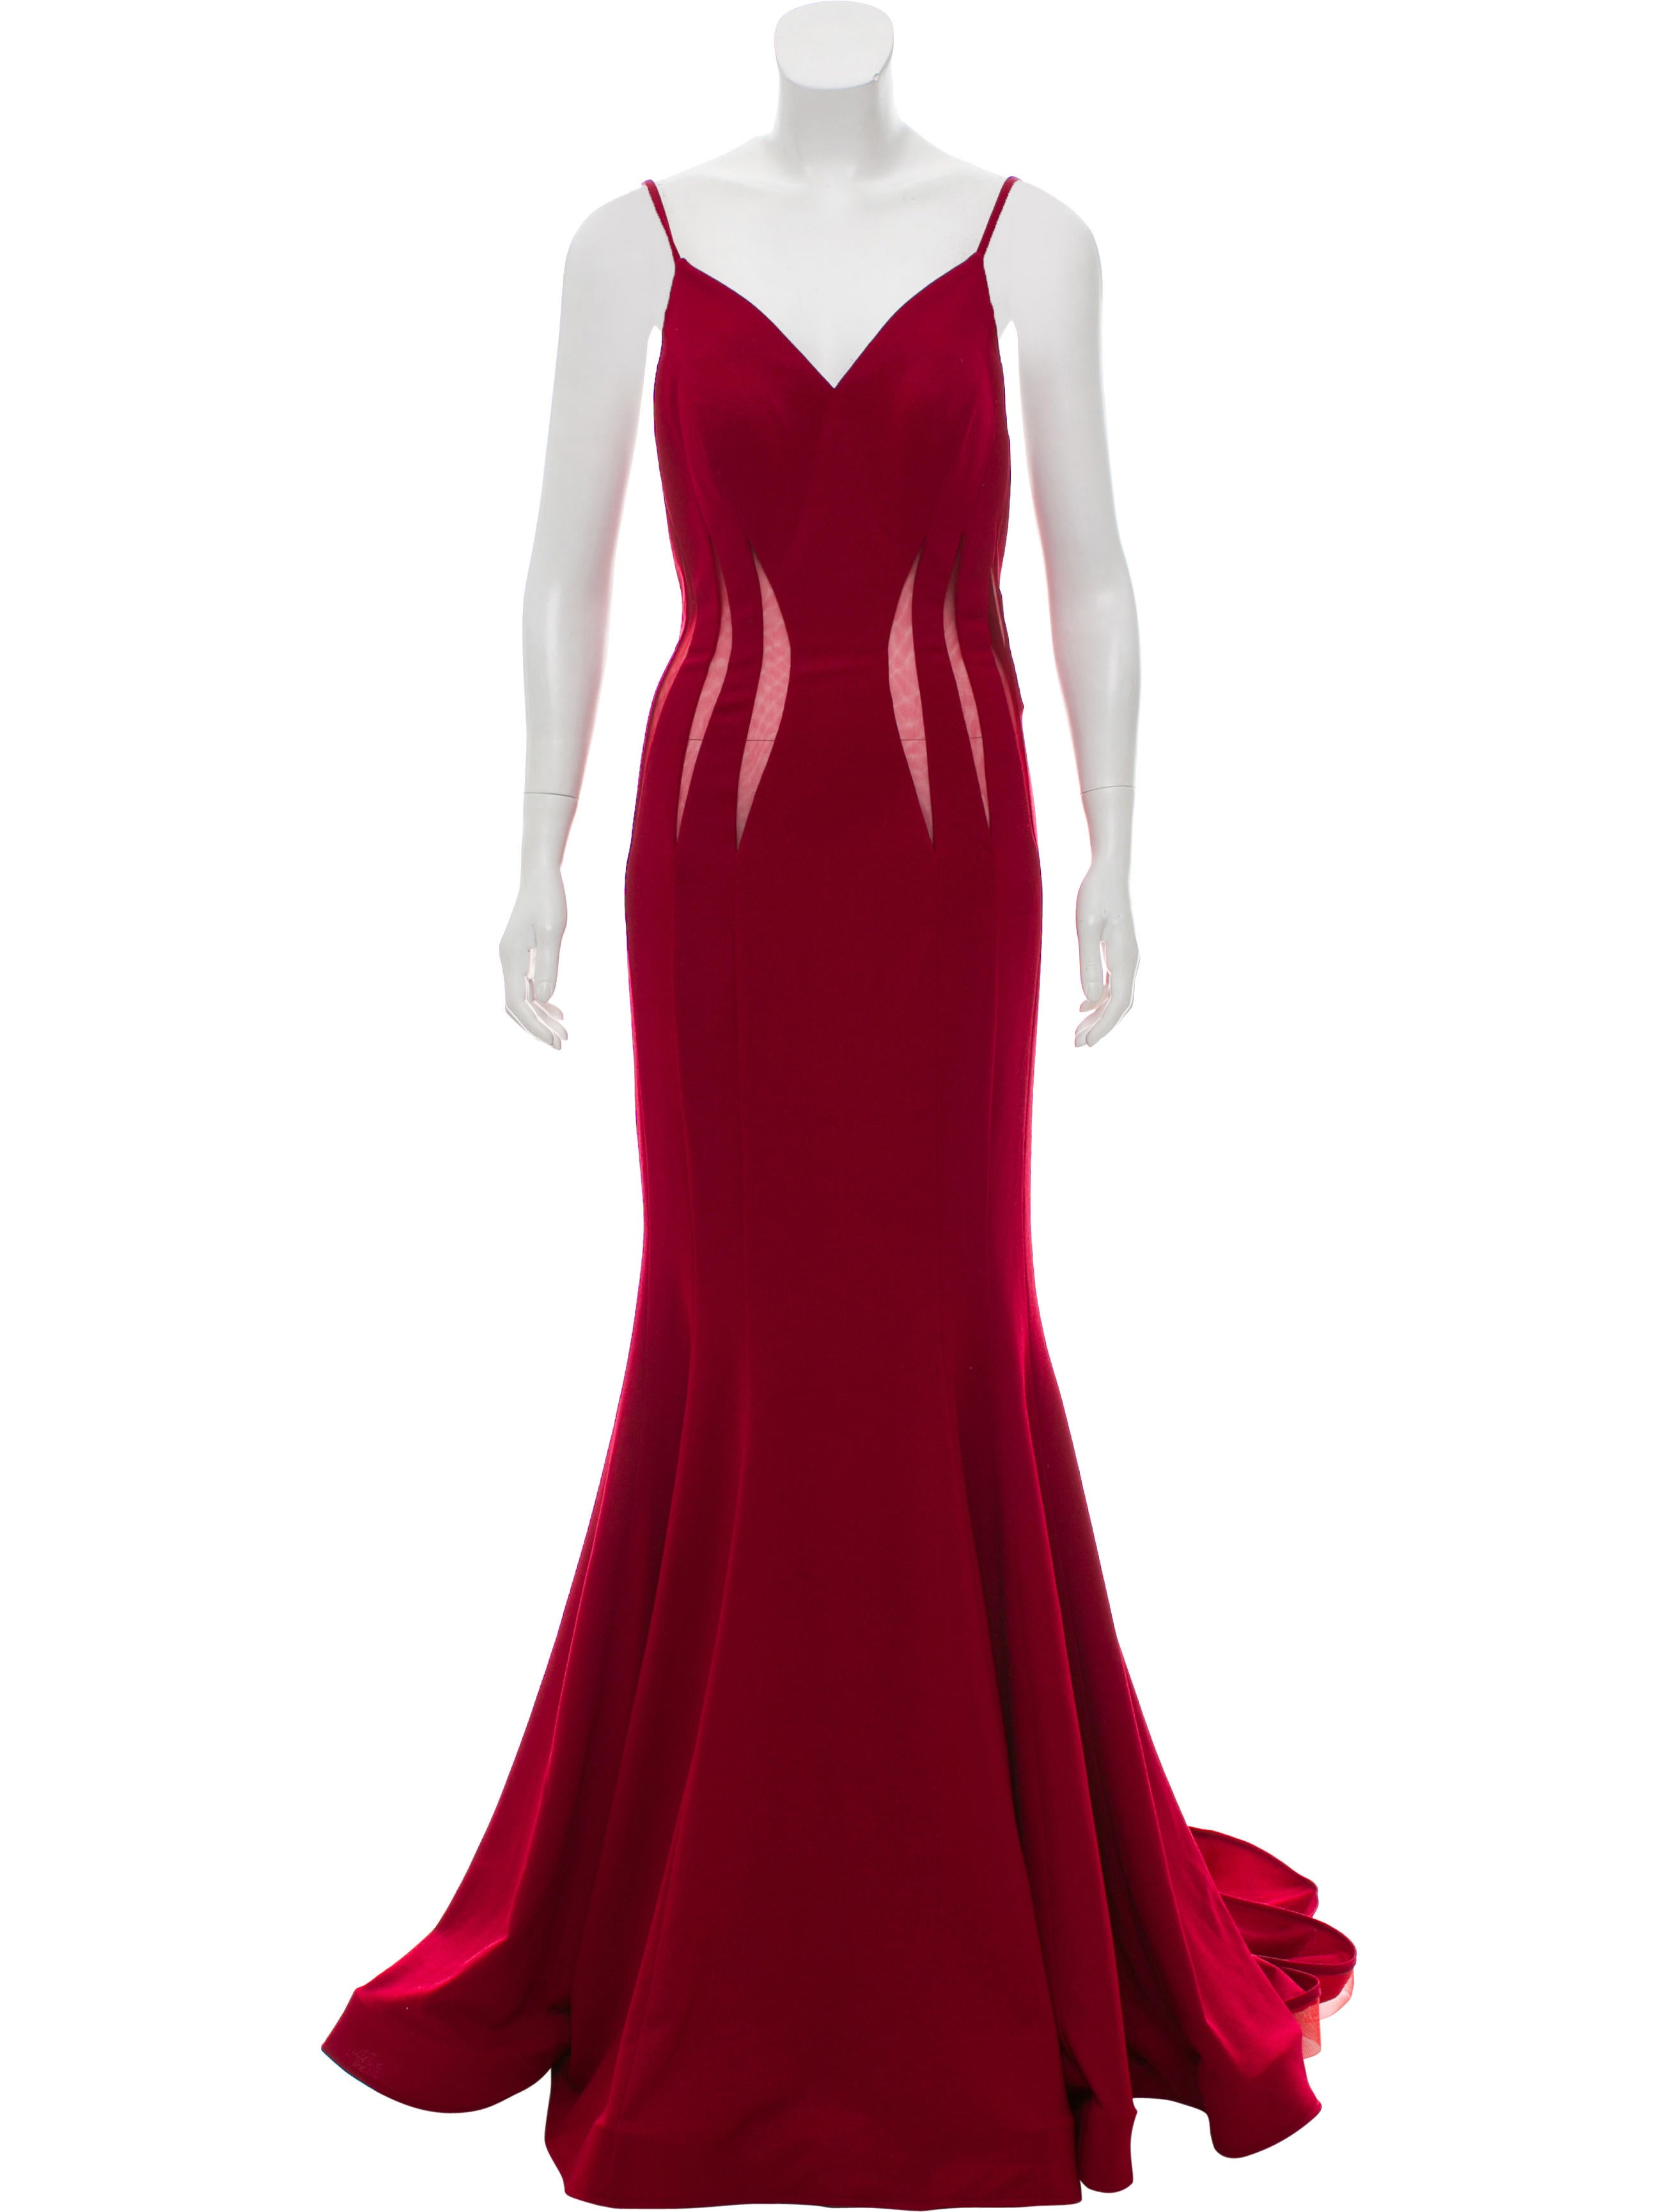 Jovani Backless Evening Gown - Clothing - WJOVI20625 | The RealReal